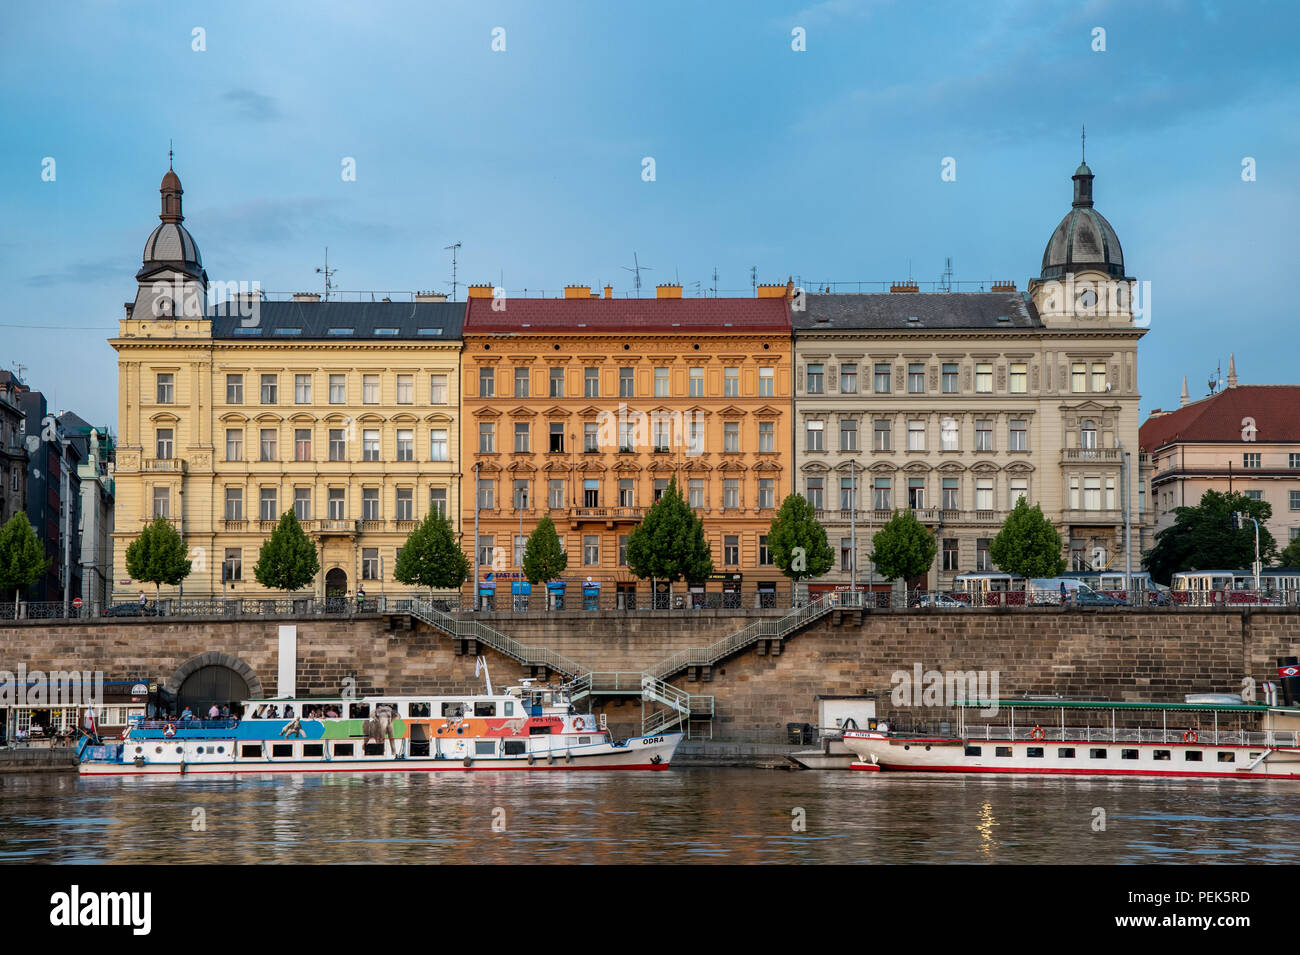 Docked river boats on Vlatava River in Prague, Czech Republic - Stock Image